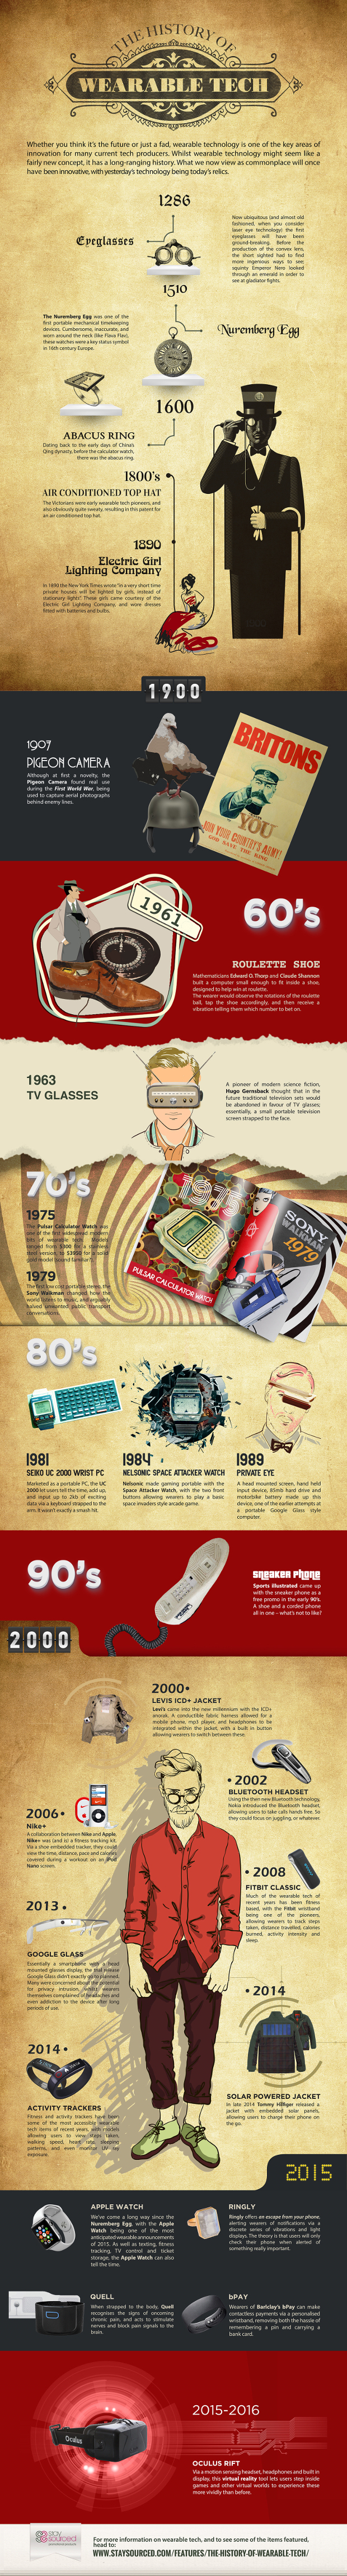 Wearable Tech Infographic2